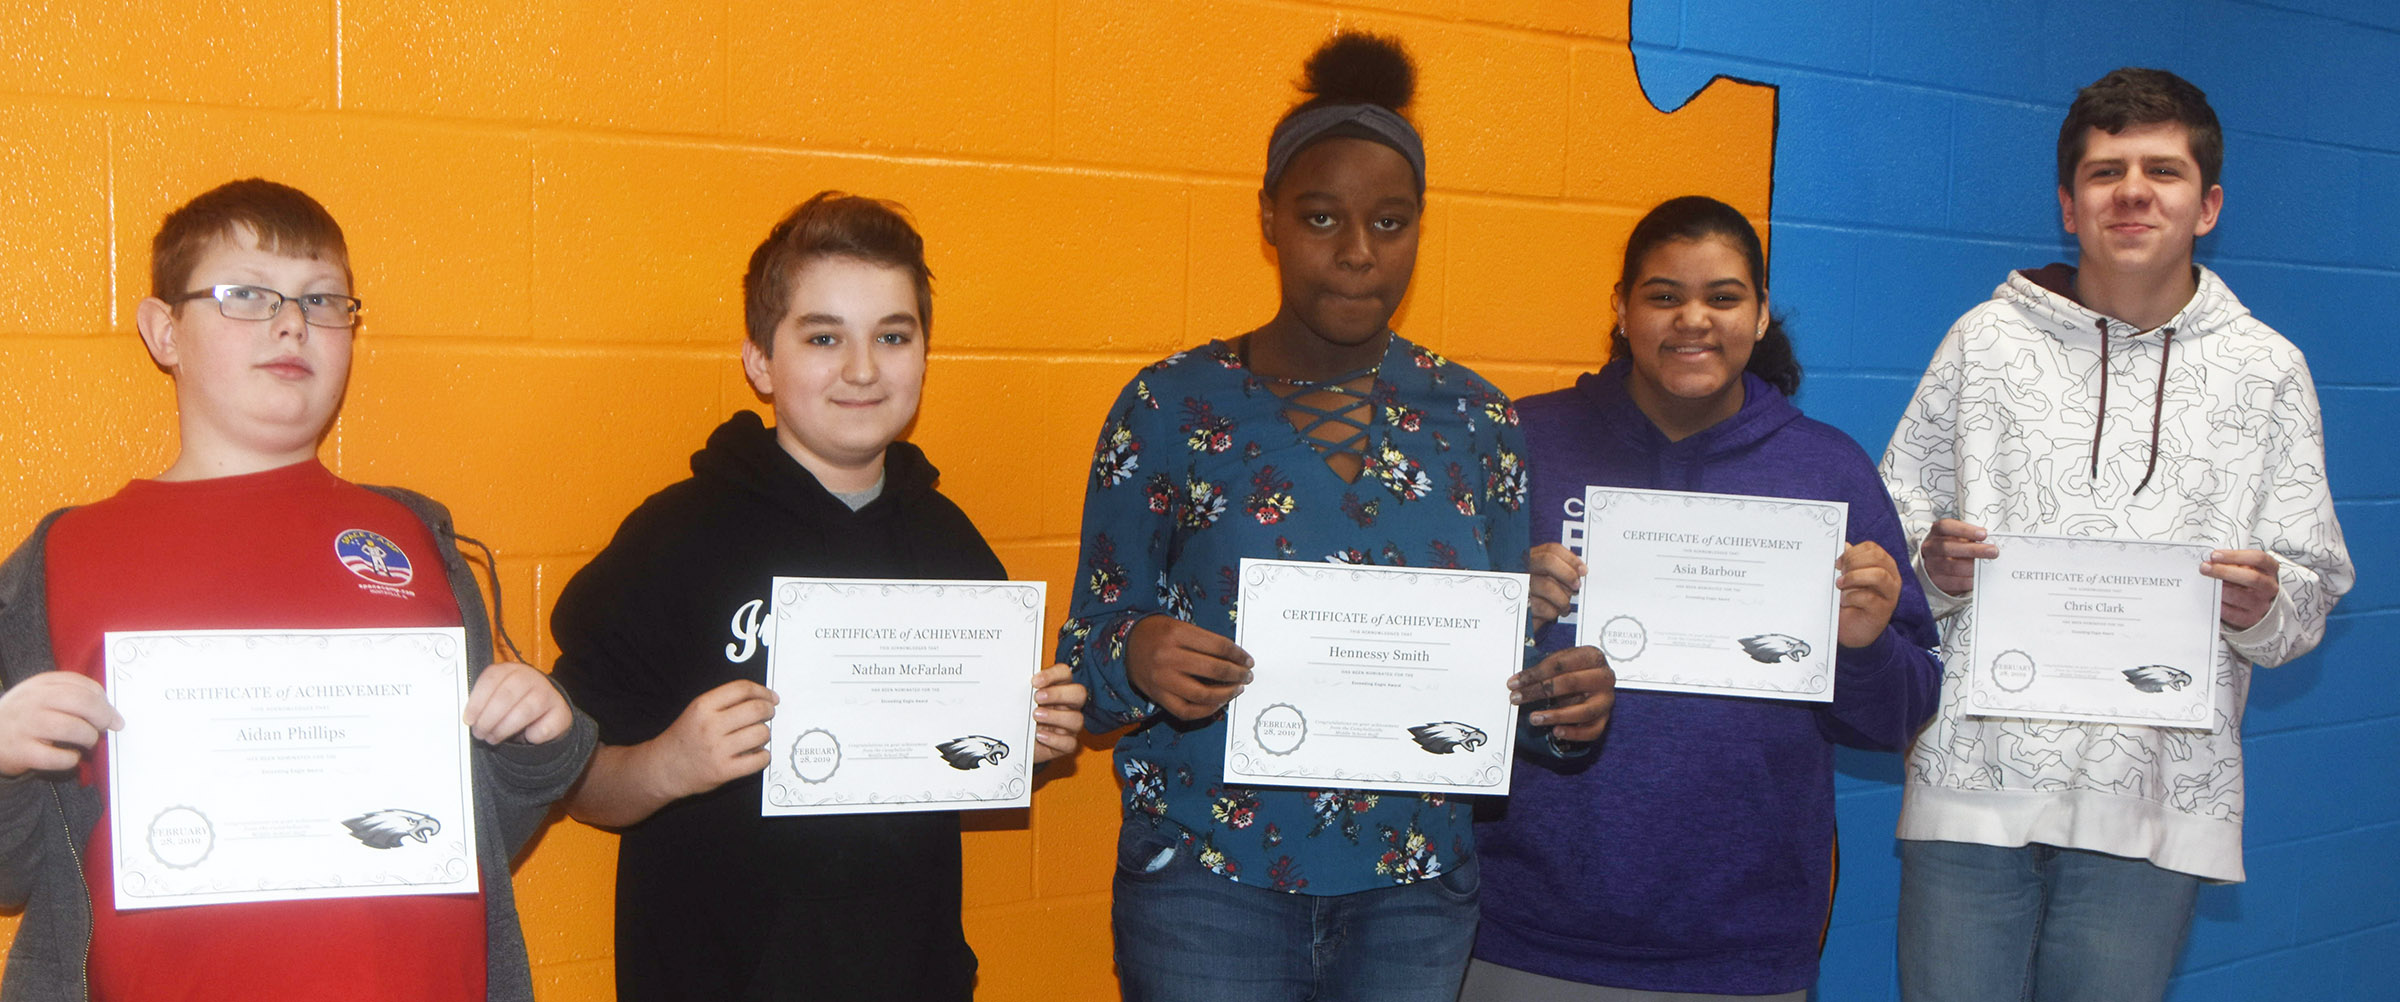 CMS Exceeding Eagles for the week of Feb. 25 are sixth-grader Aidan Phillips, seventh-graders Nathan McFarland and Hennessy Smith and eighth-graders Asia Barbour and Chris Clark.